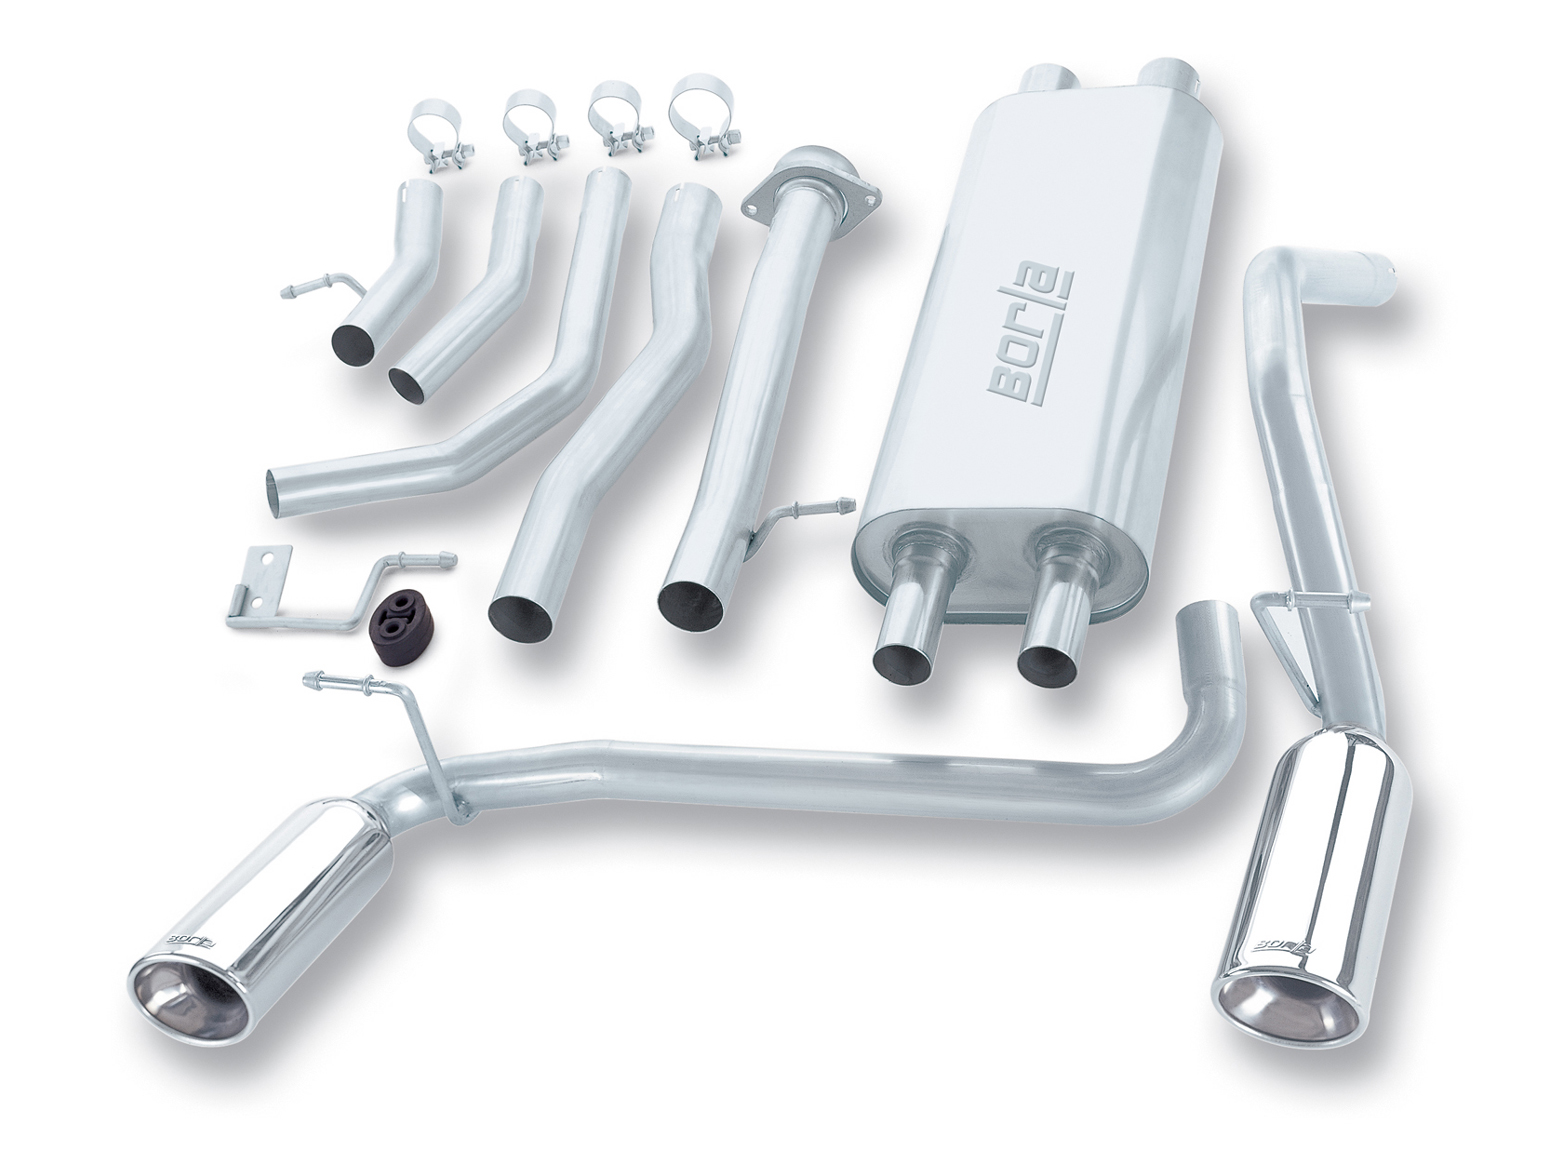 "Hummer H2 Suv/Sut 2003-2006 Borla 2.5"", 2"" Cat-Back Exhaust System - Single Oval Rolled Angle-Cut Lined Resonated"